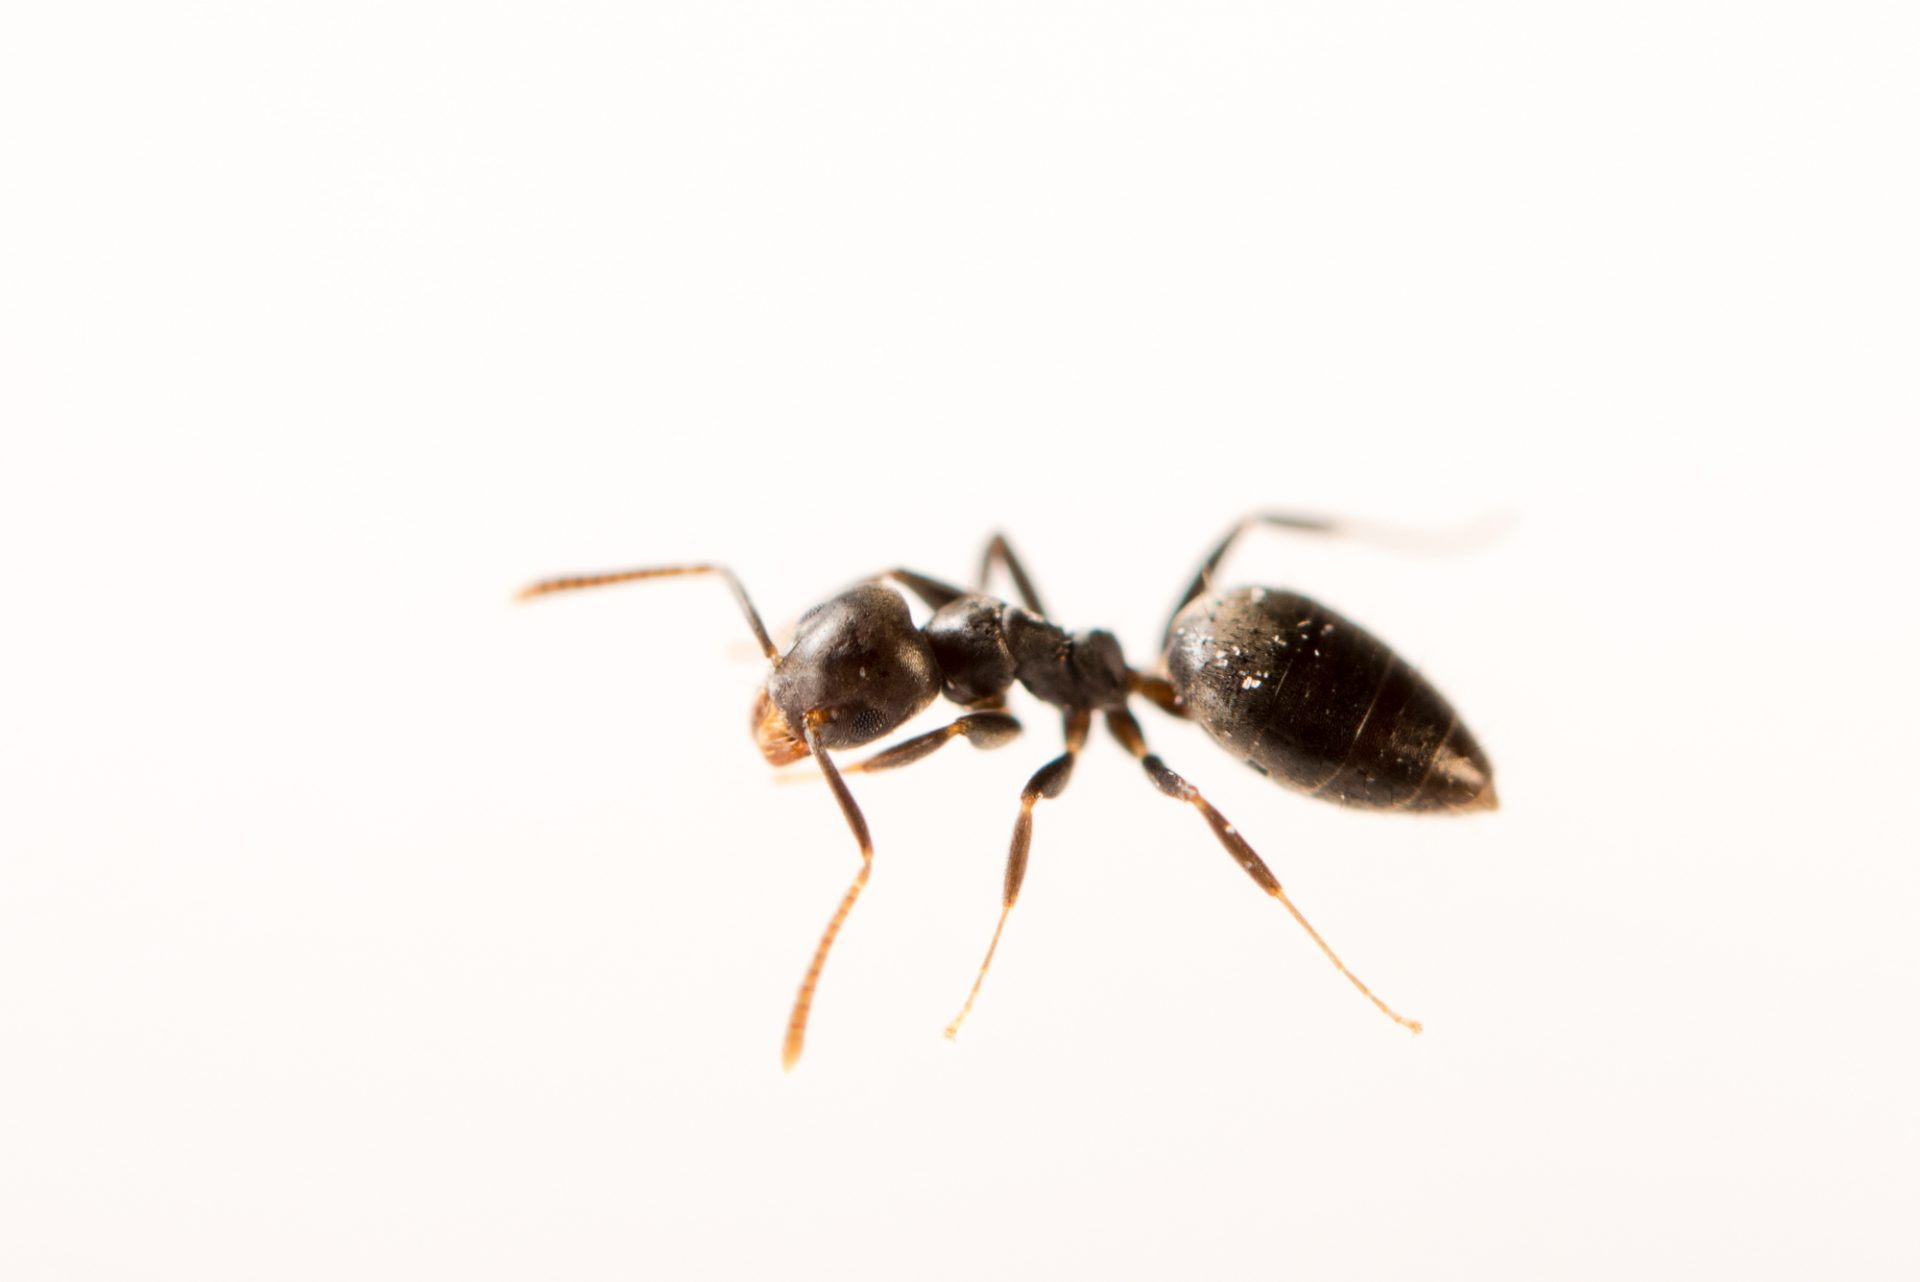 Photo: White-footed ant (Technomyrmex albipes) at the Urban Entomology Lab at the University of Florida in Gainesville.